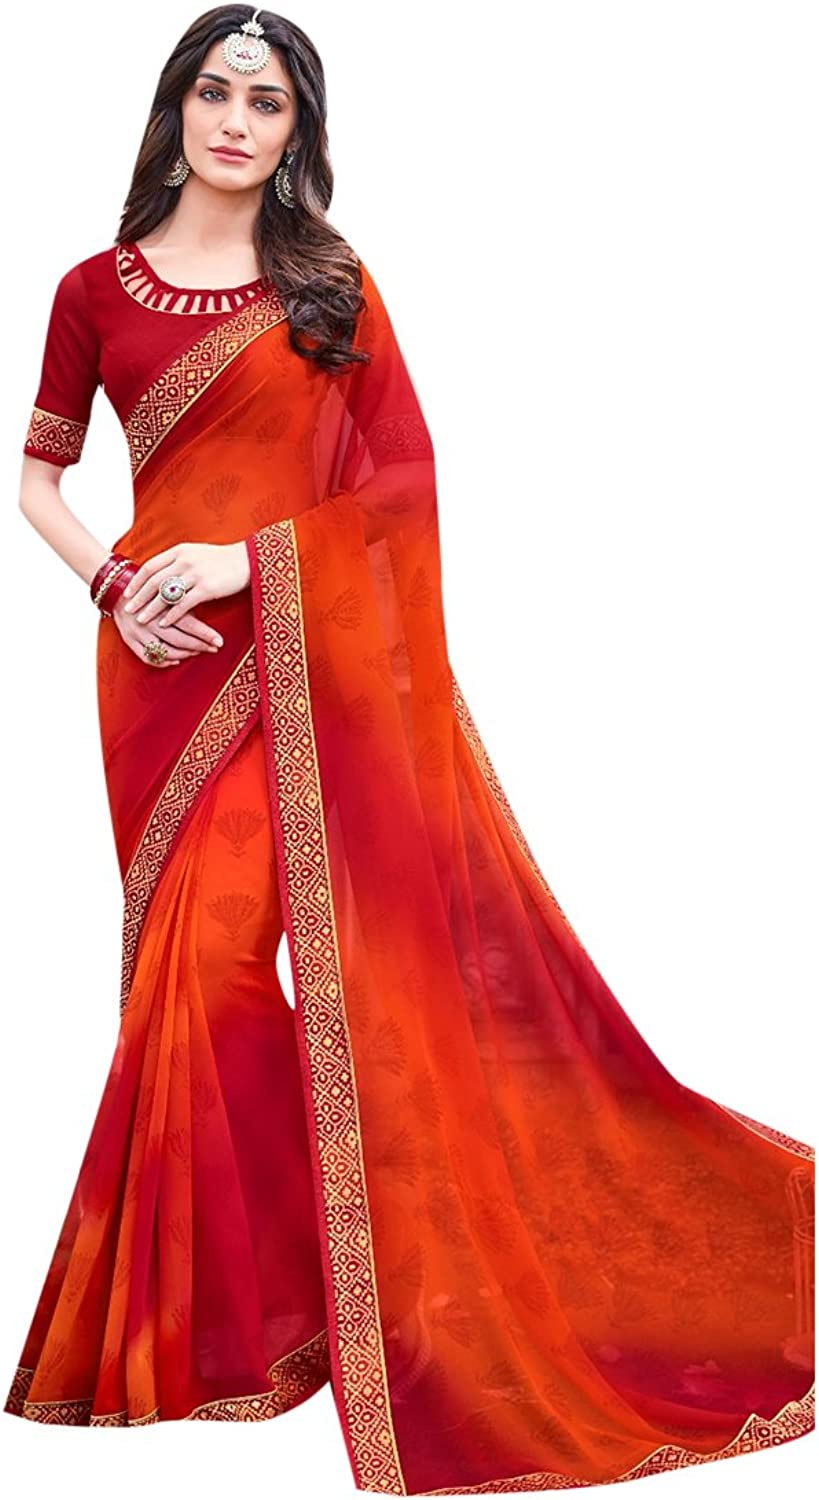 Designer Bollywood Saree Sari Printed Women Latest Indian Ethnic Wedding Collection Blouse Party Wear Festive Ceremony 28118